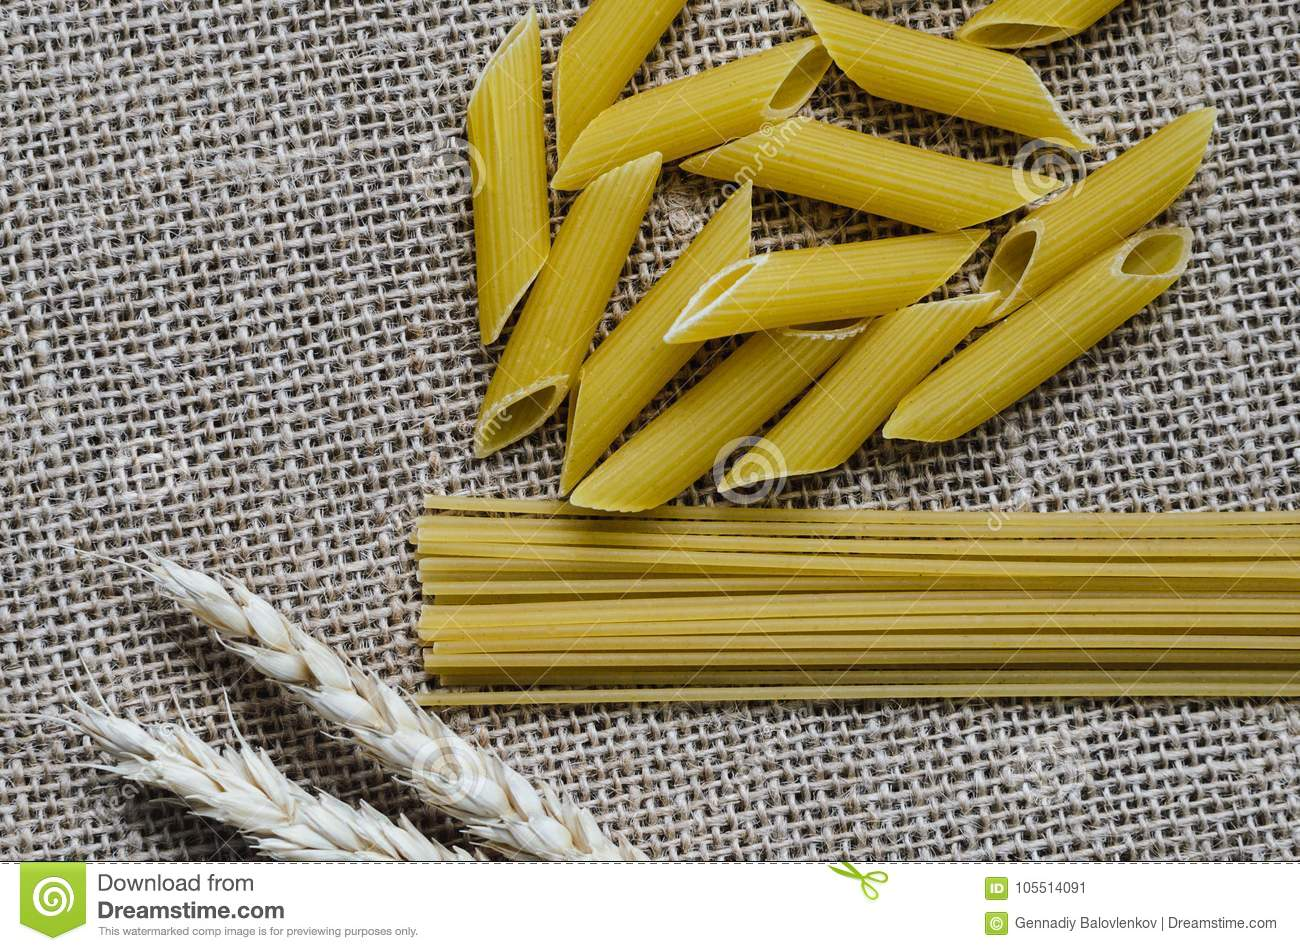 Still life for a kitchen of wheat ears and pasta from wheat on a sackcloth background Made in Kazakhstan